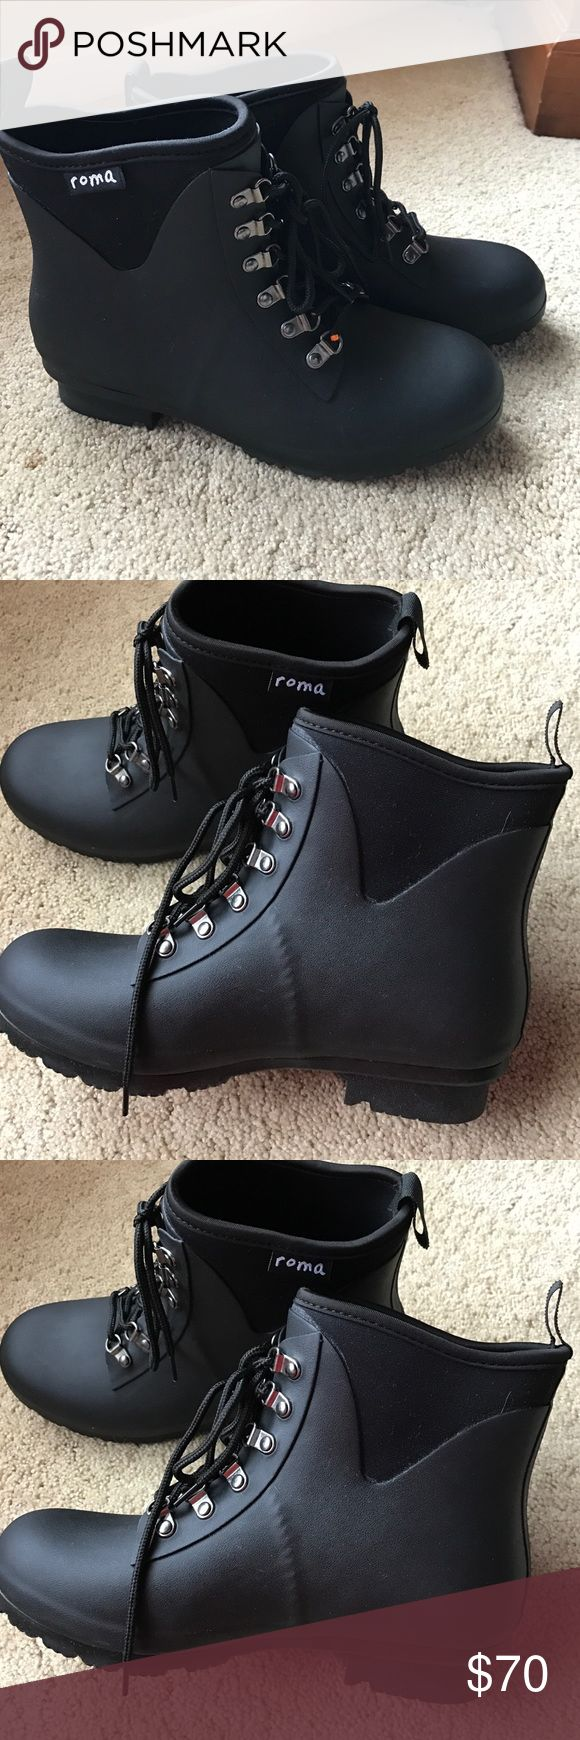 "NWOT Roma Boots ""evol"" rain boots size 9 NWOT ☔️Roma Boots ""Evol"" style matte black rain boots size 9 matte black rubber rain boots. Superb quality, never worn- cute hiking boot style, slip on with laces roma Shoes Winter & Rain Boots"